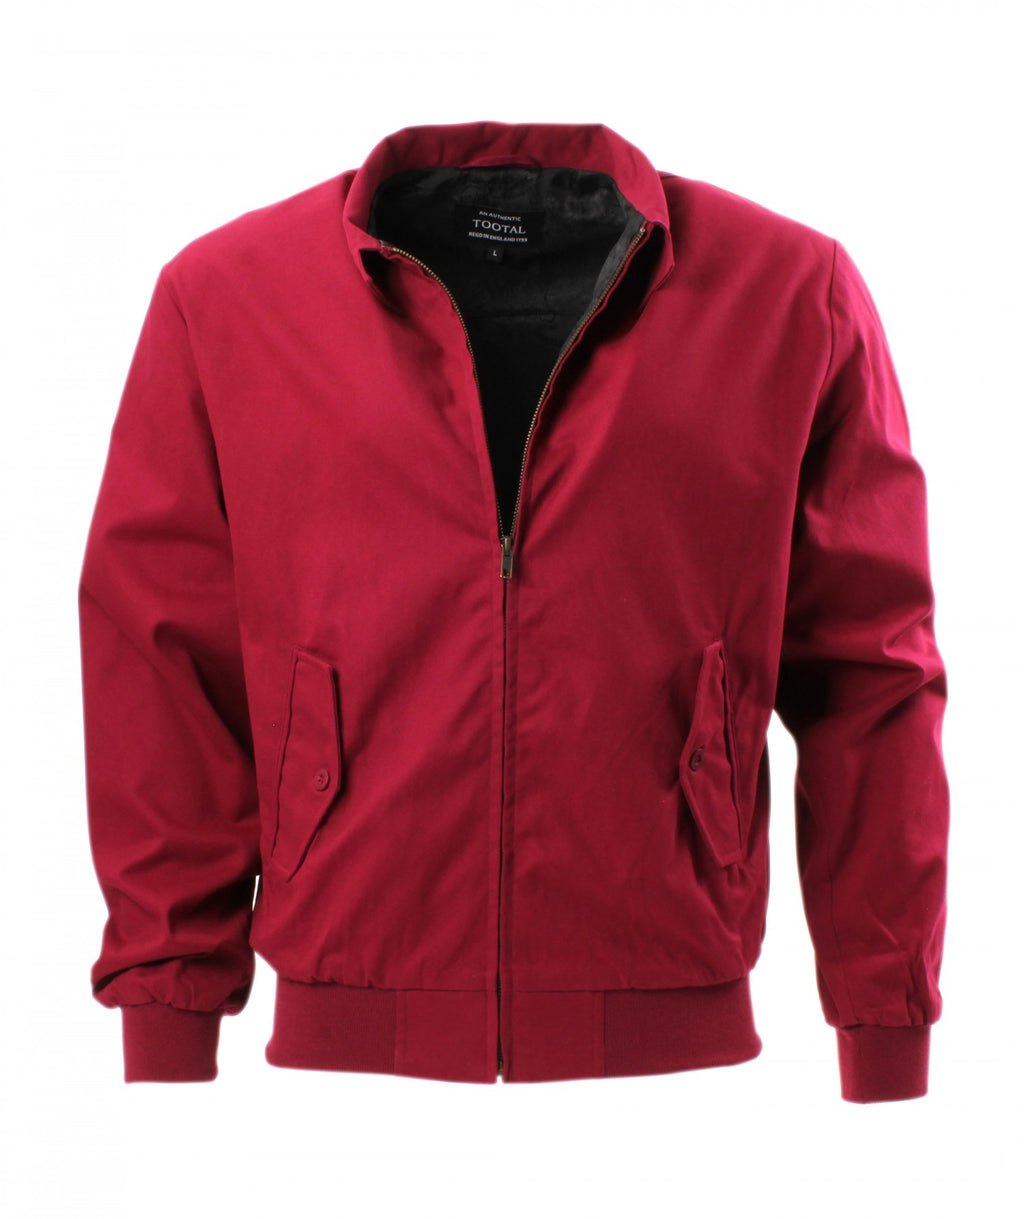 Modern Classic Harrington Jacket in Burgundy from Tootal